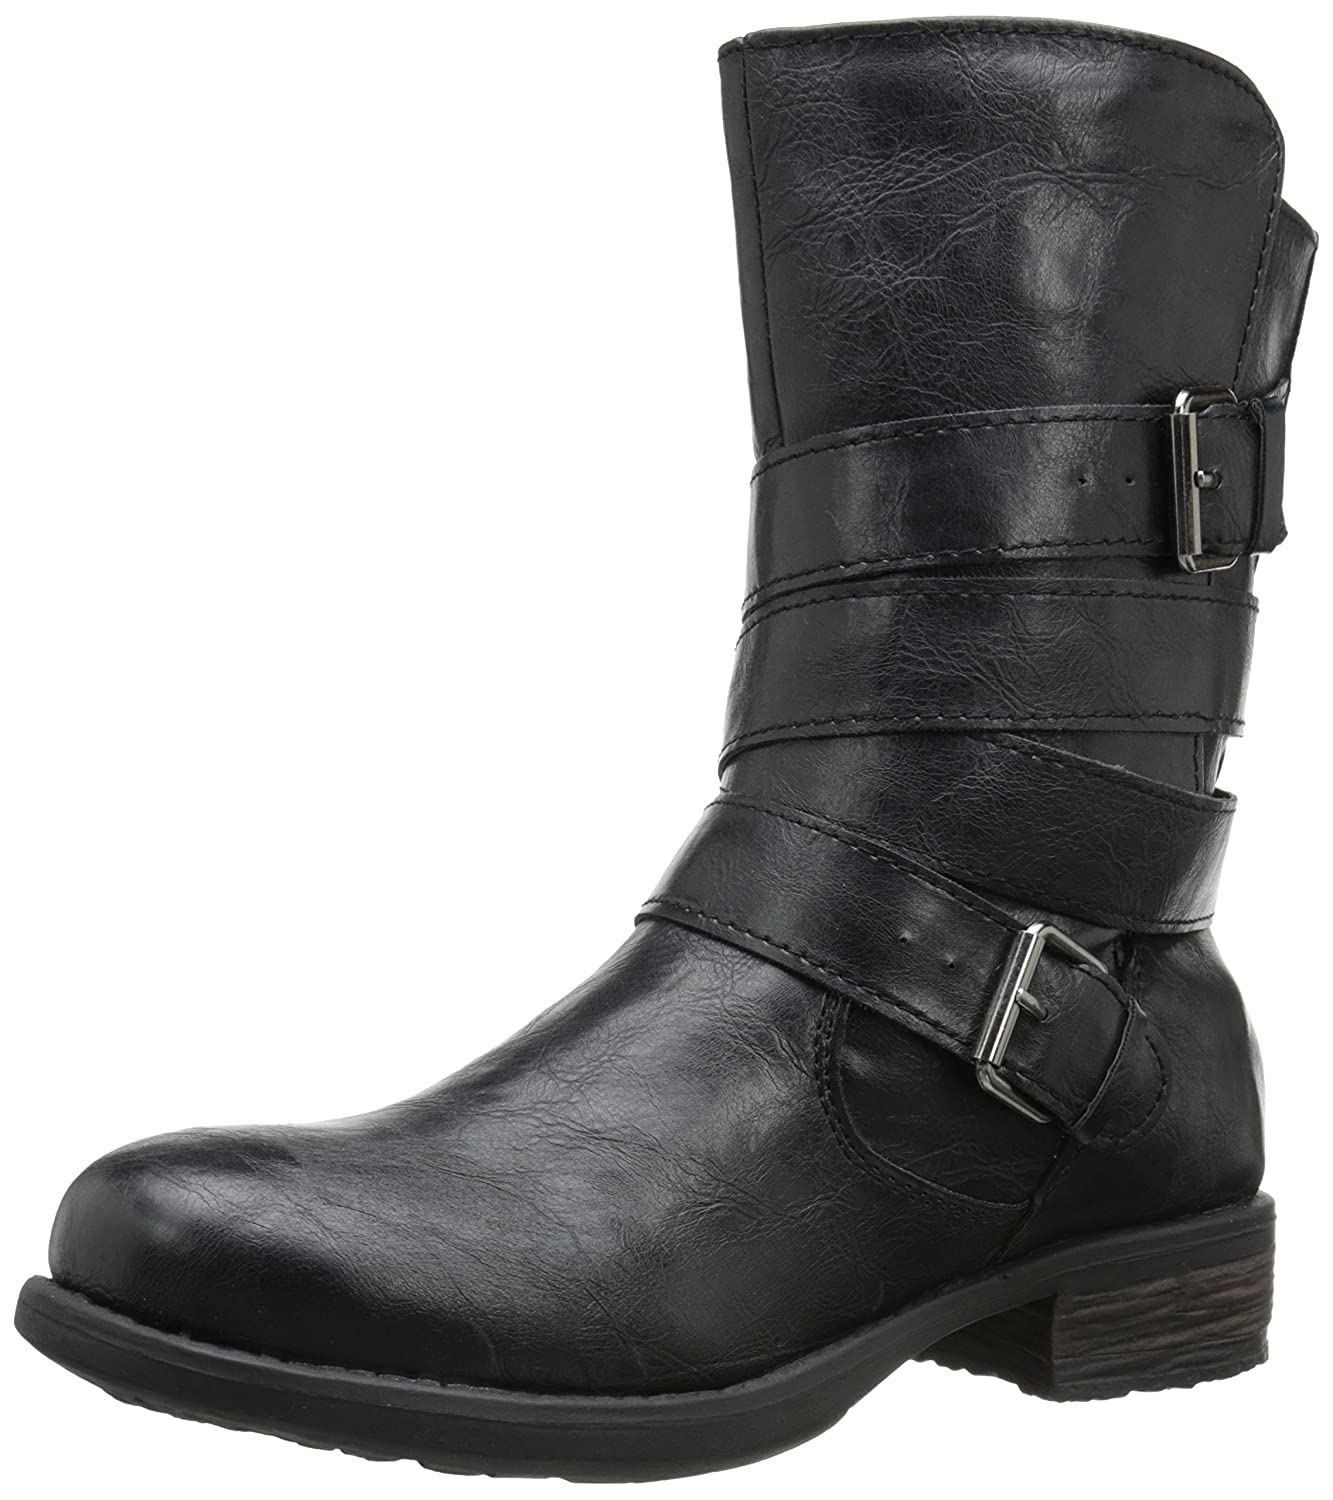 Women's Leather Motorcycle Buckle Boots